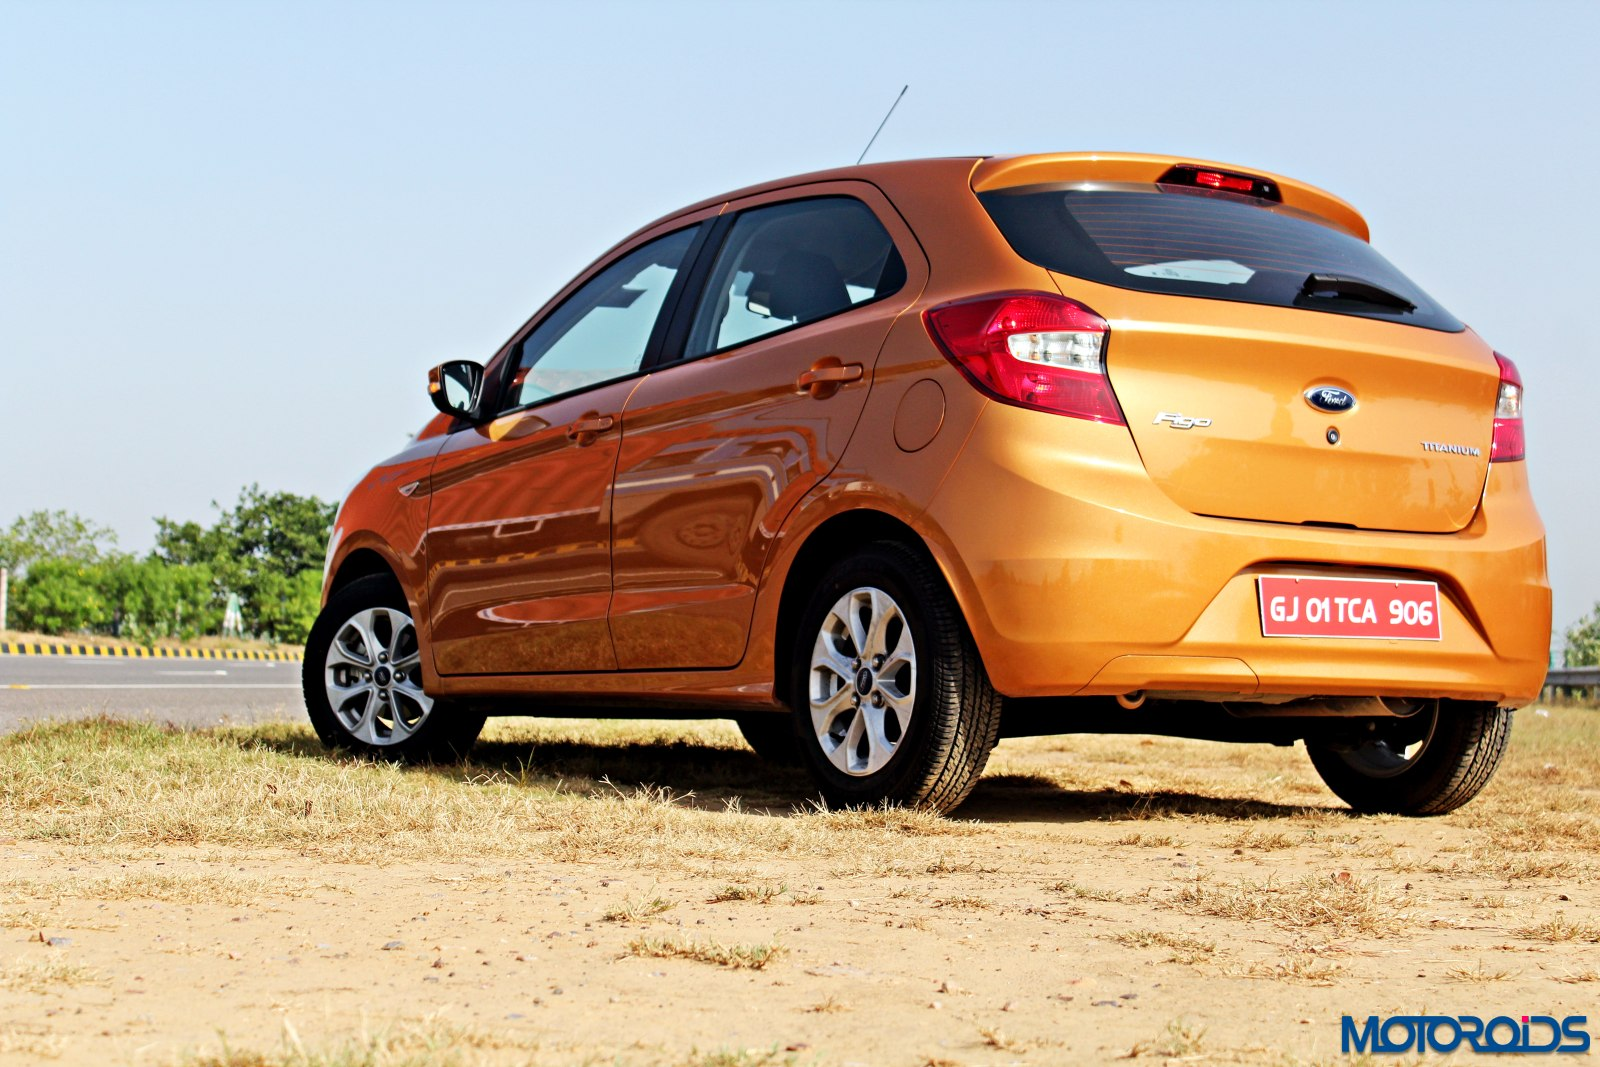 new 2015 Ford Figo rear (1)